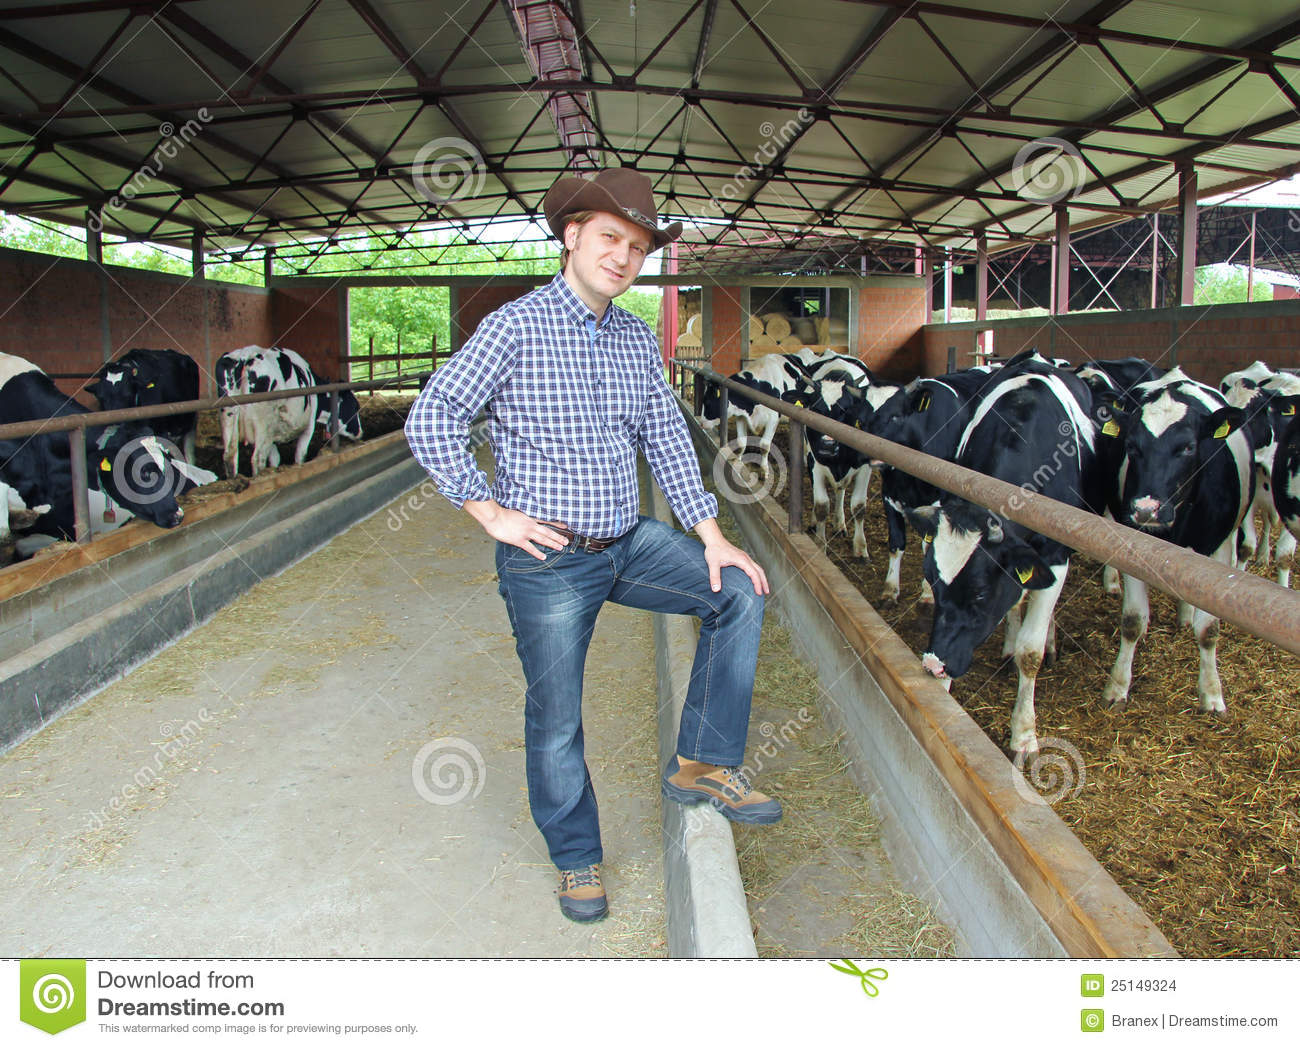 Cowboy On Farm Stock Images  Image 25149324